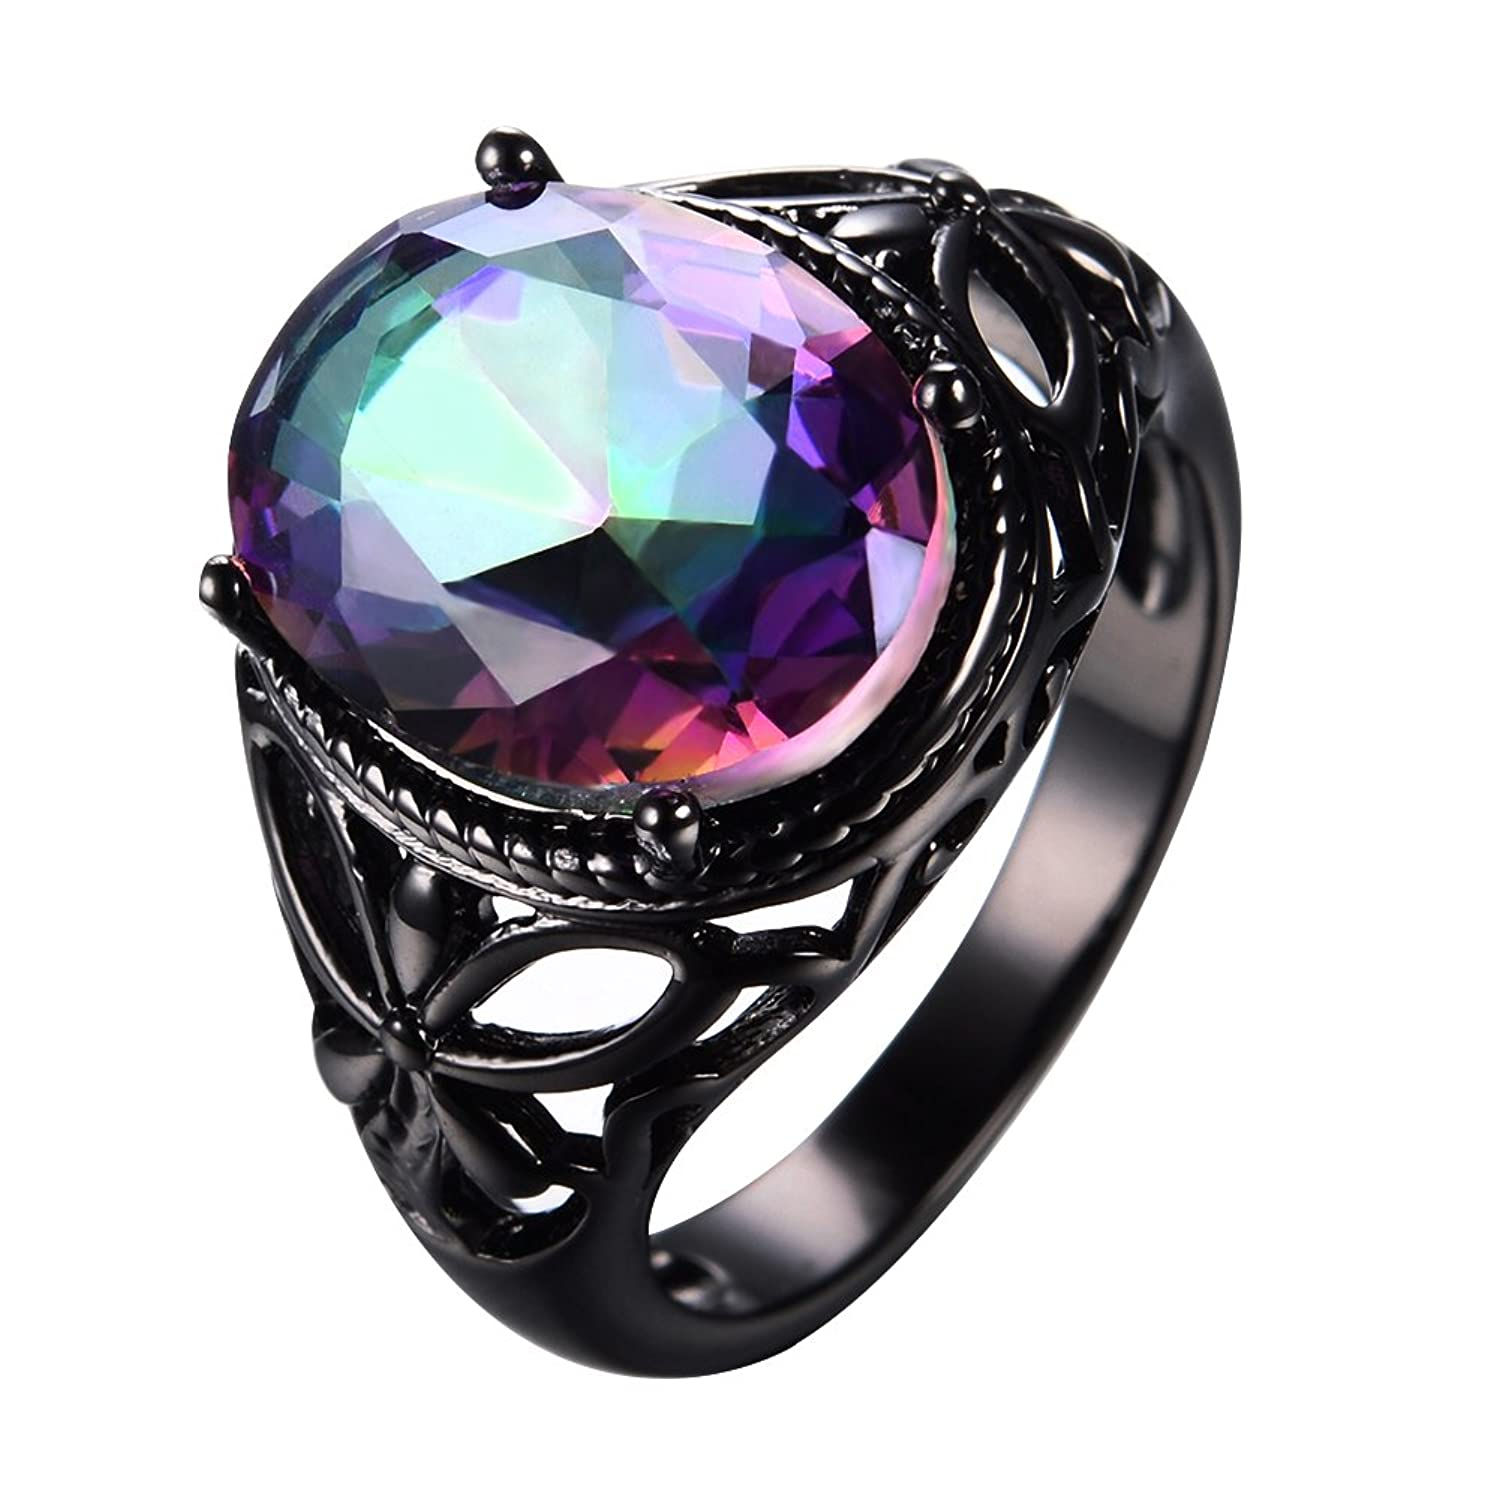 Bamos Jewelry Women's Rainbow Topaz Diamonds Ring